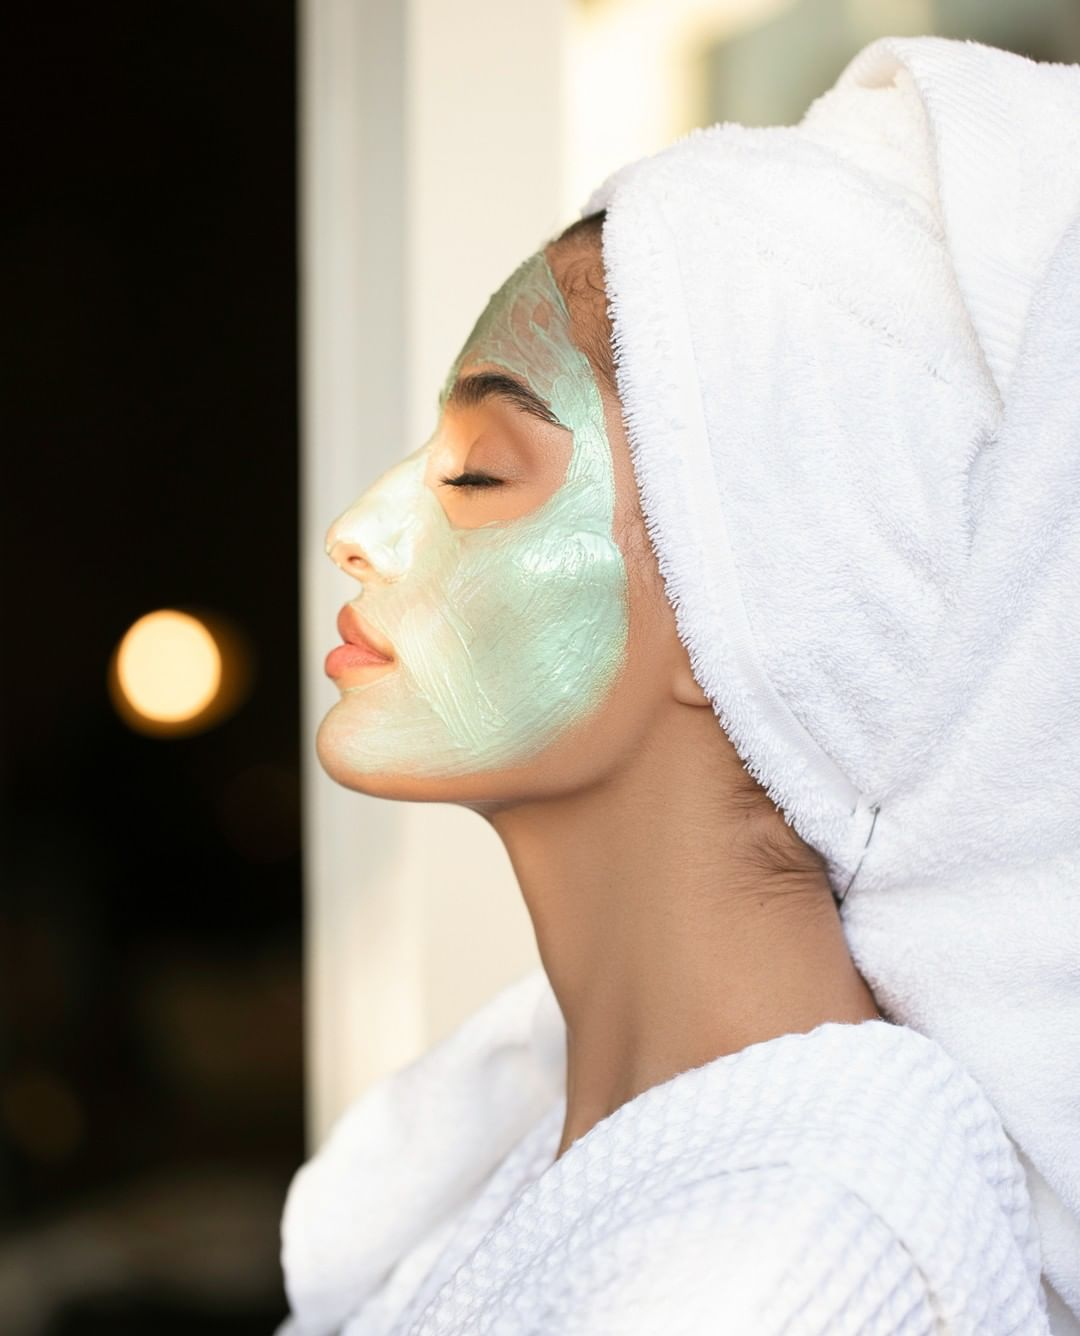 AHAVA - We love our skin, but we don't always love when it gets red and irritated during the heat of summer. Our Brightening & Hydrating Mask is made with mineral-rich mud that hydrates, brightens, an...